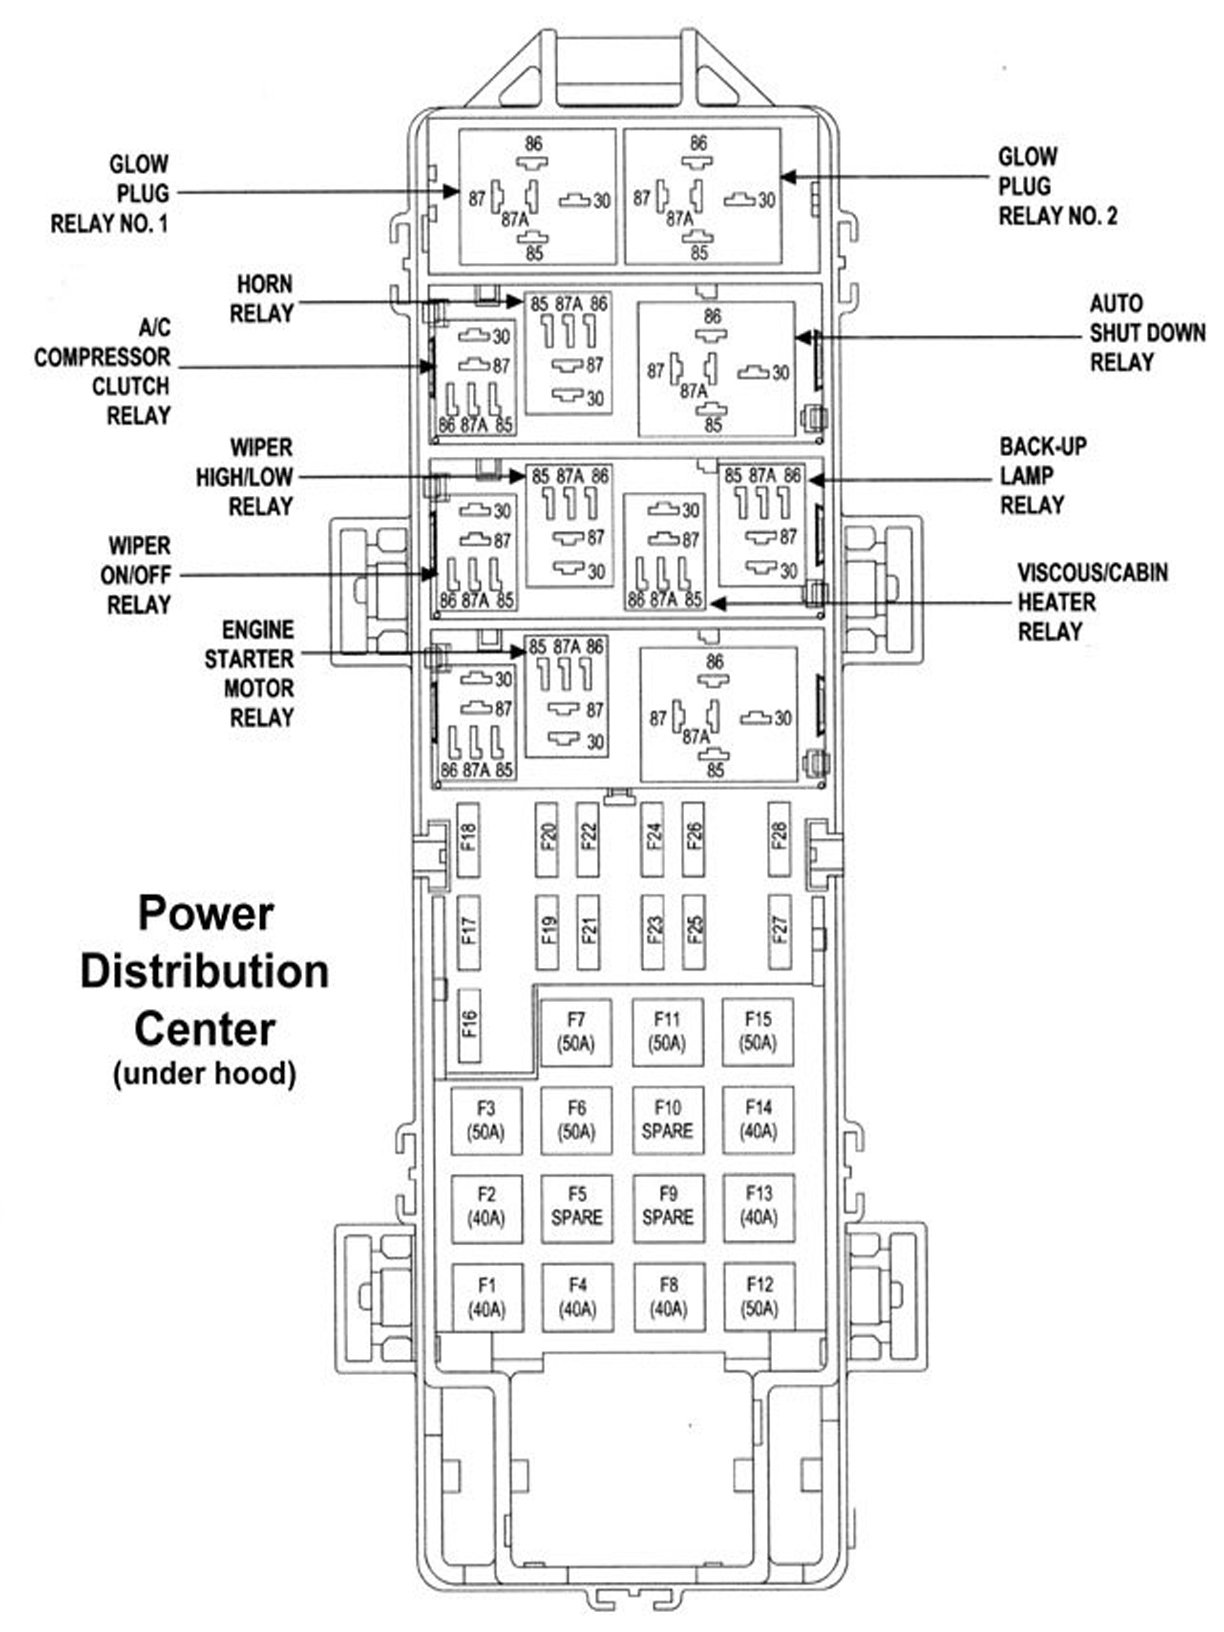 AAAAAAAAug 28 Fuse Box 04 91415 jeep grand cherokee wj 1999 to 2004 fuse box diagram cherokeeforum 1999 jeep xj fuse box diagram at cita.asia